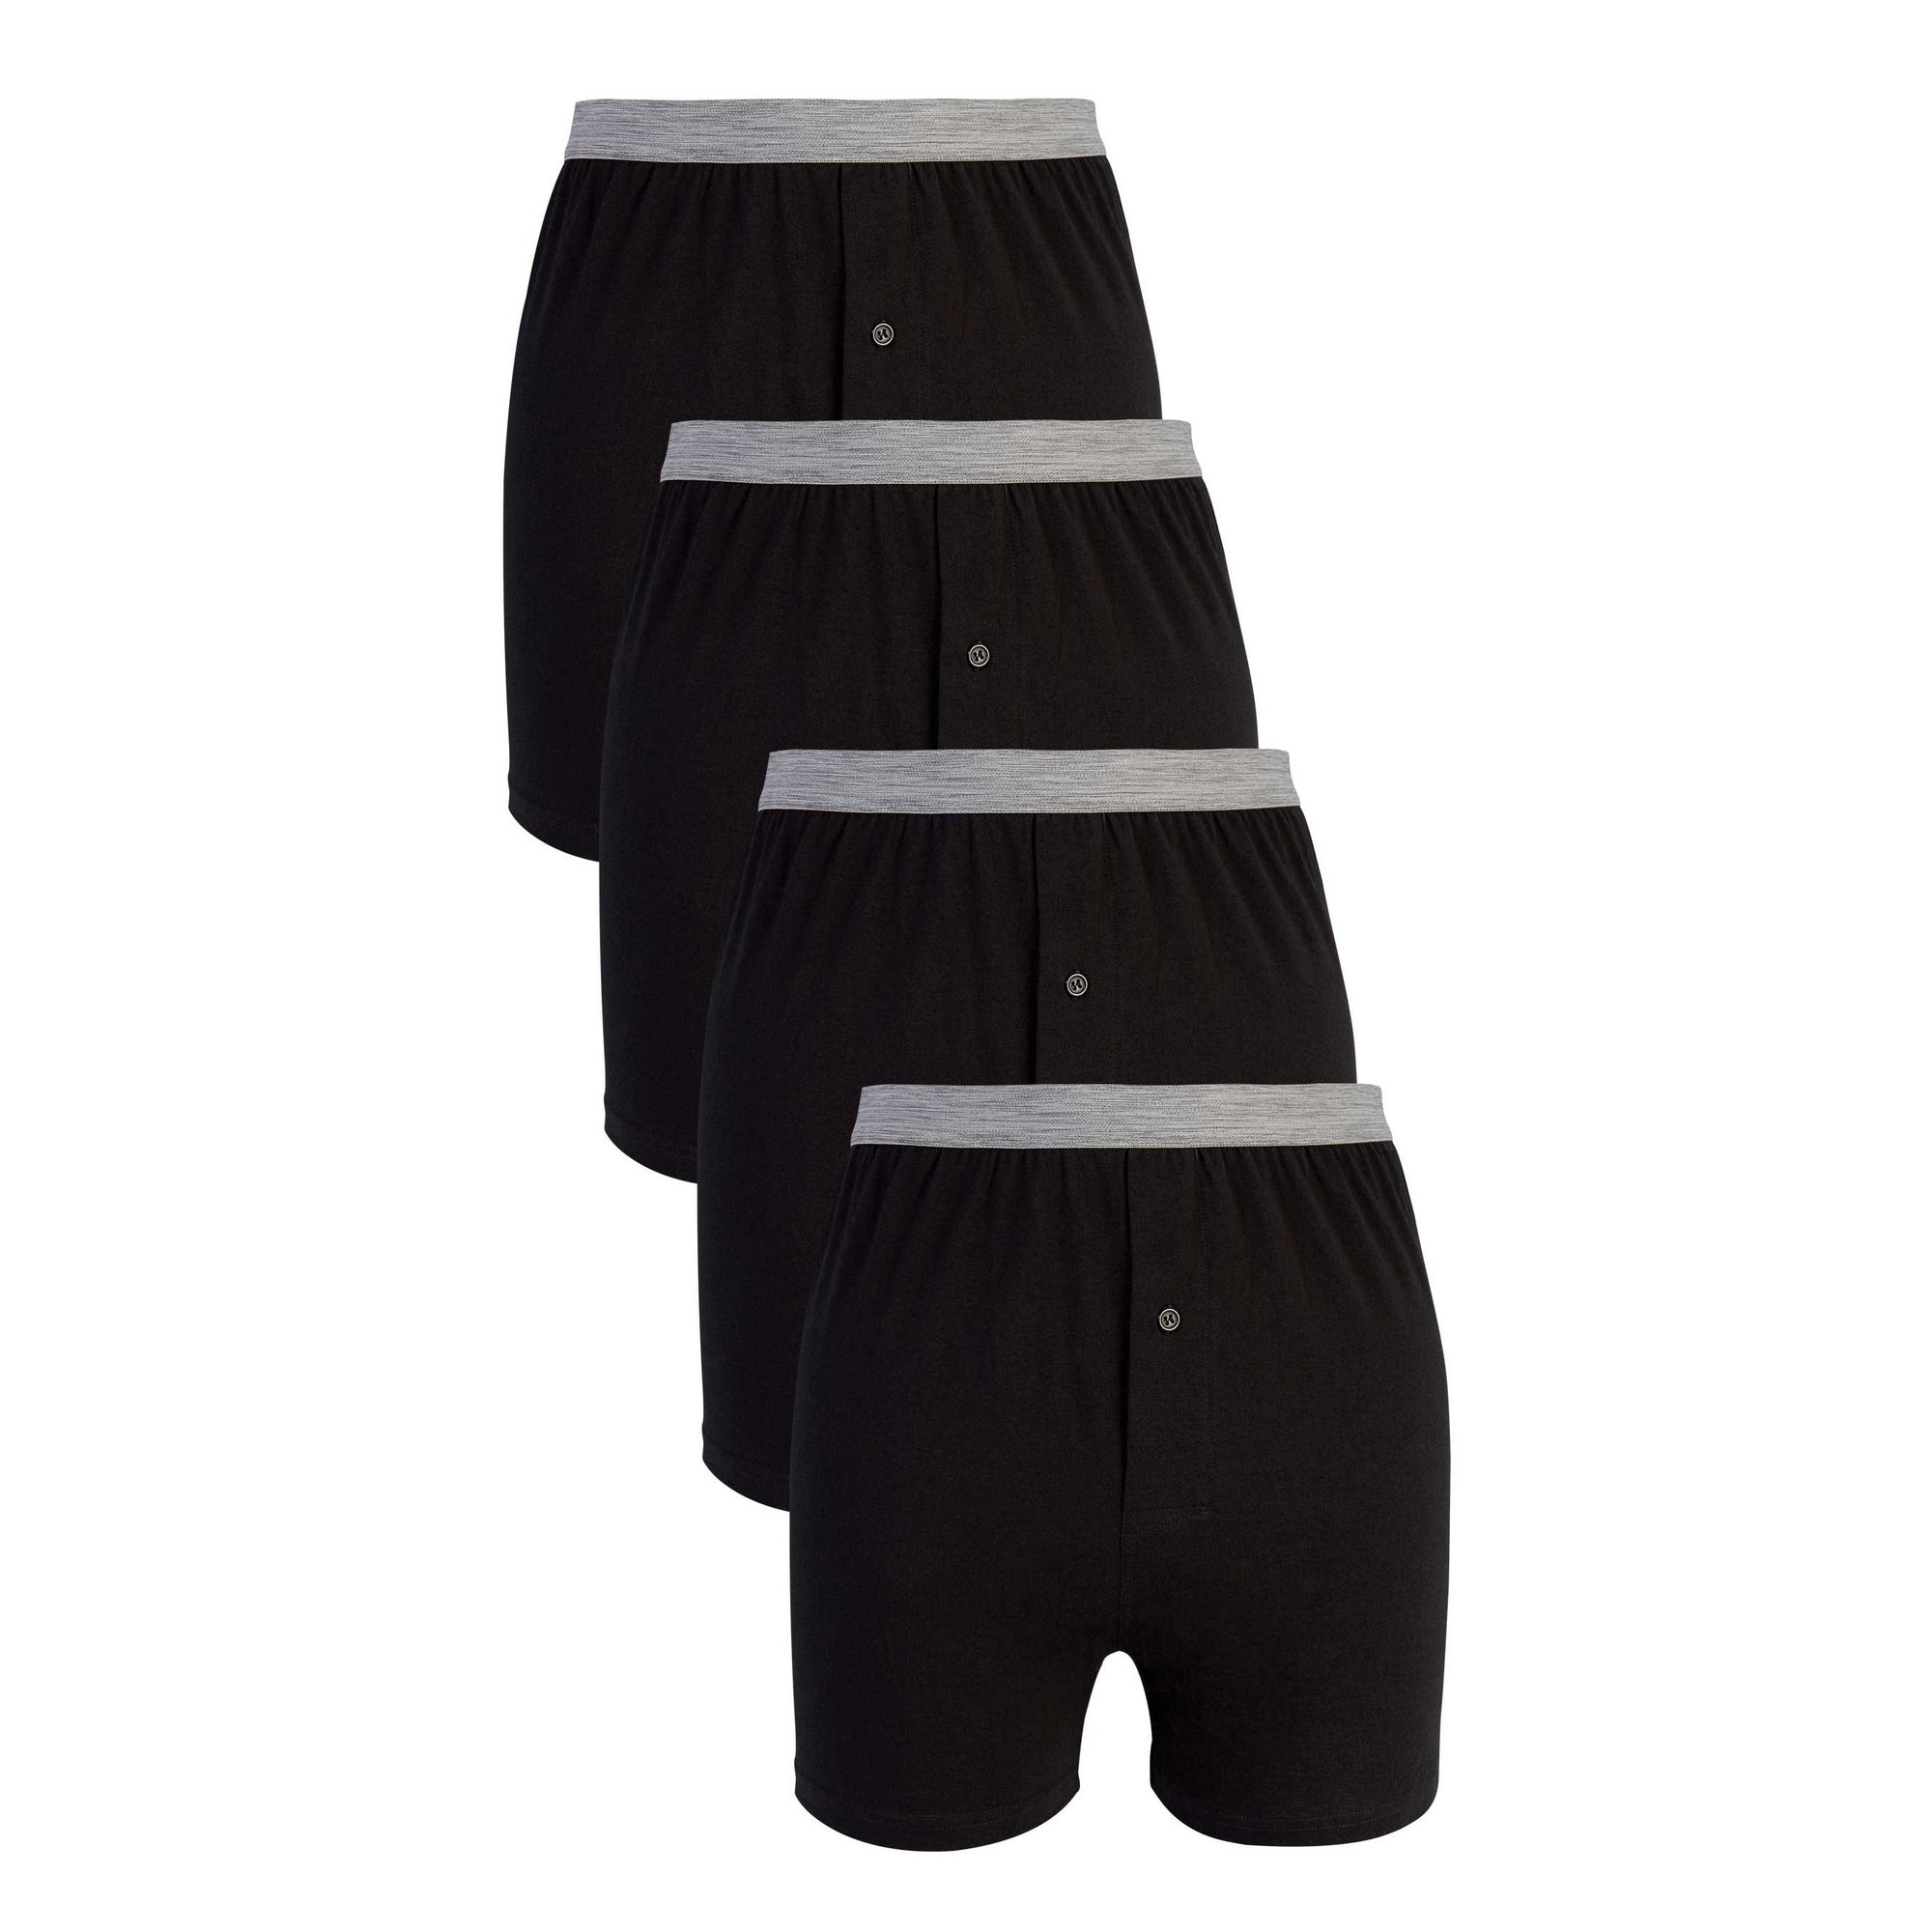 Image of Basic Pack of 4 Loose Fit Button Fly Boxers